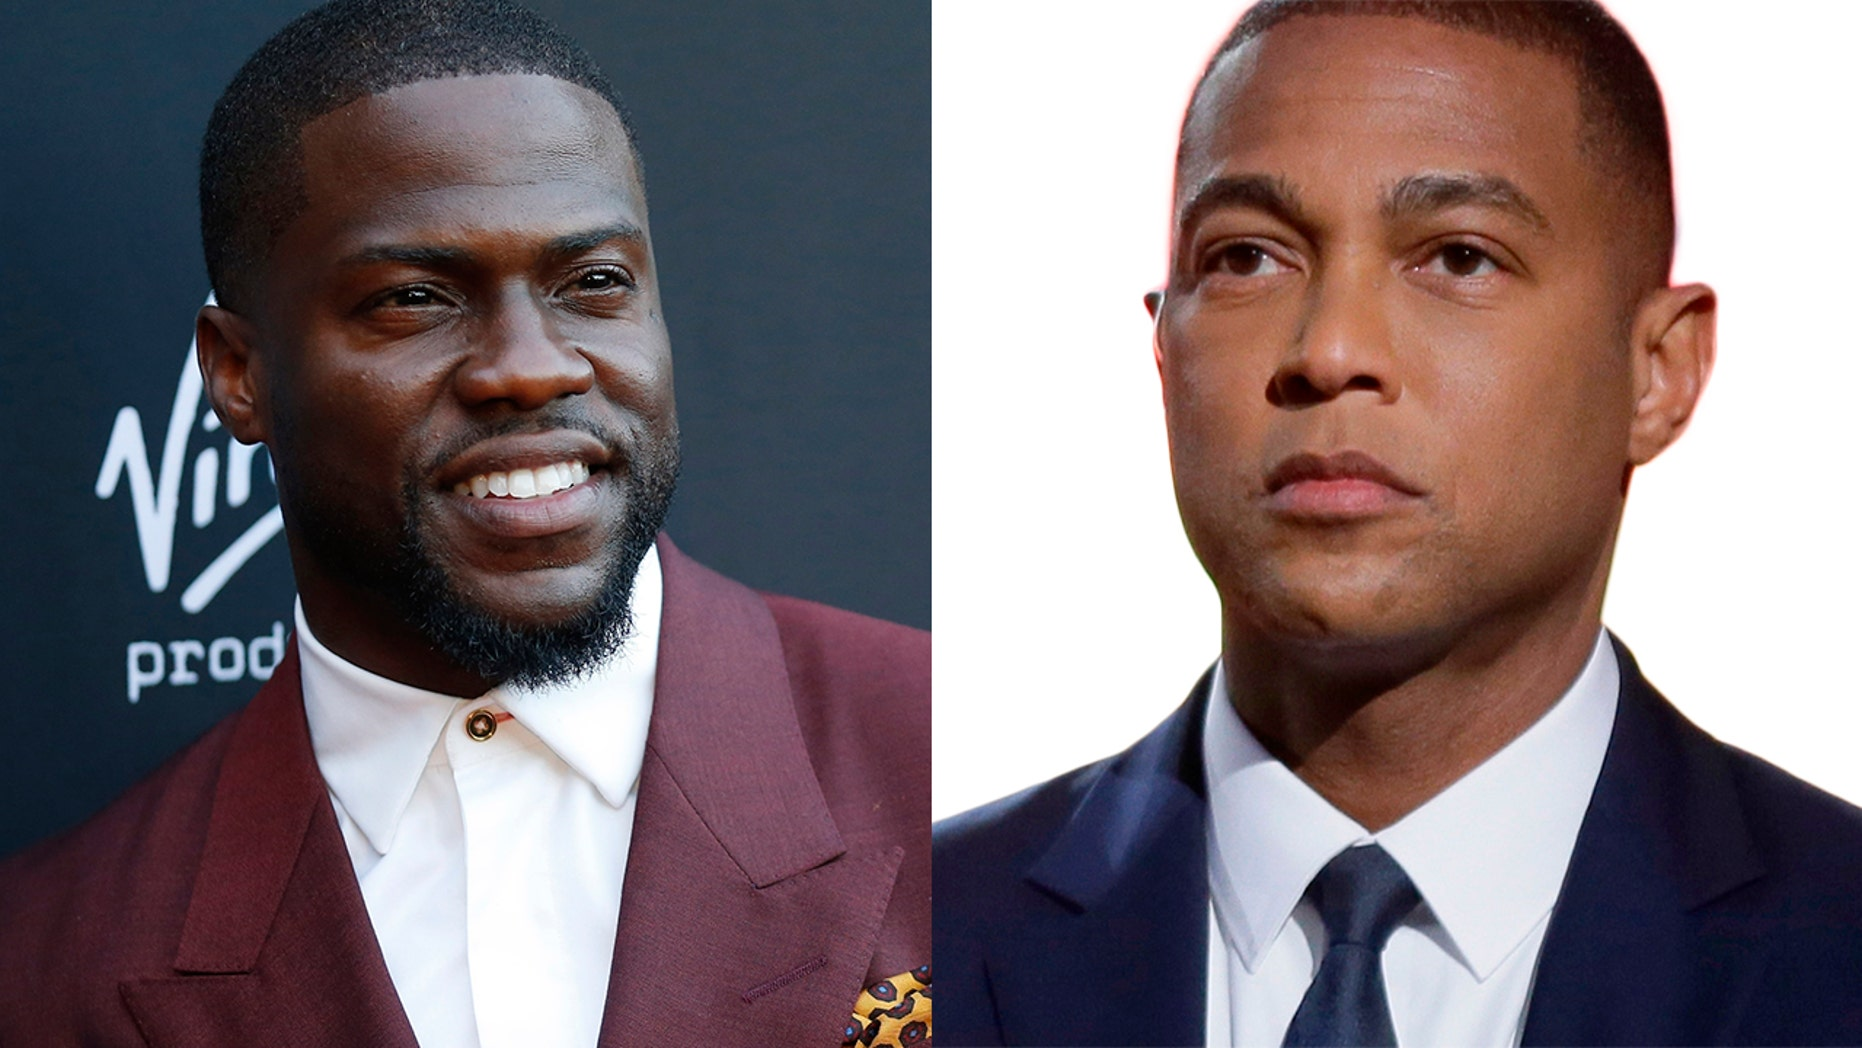 HDon Lemon right urged Kevin Hart left to be more of an ally to the LGBTQ community